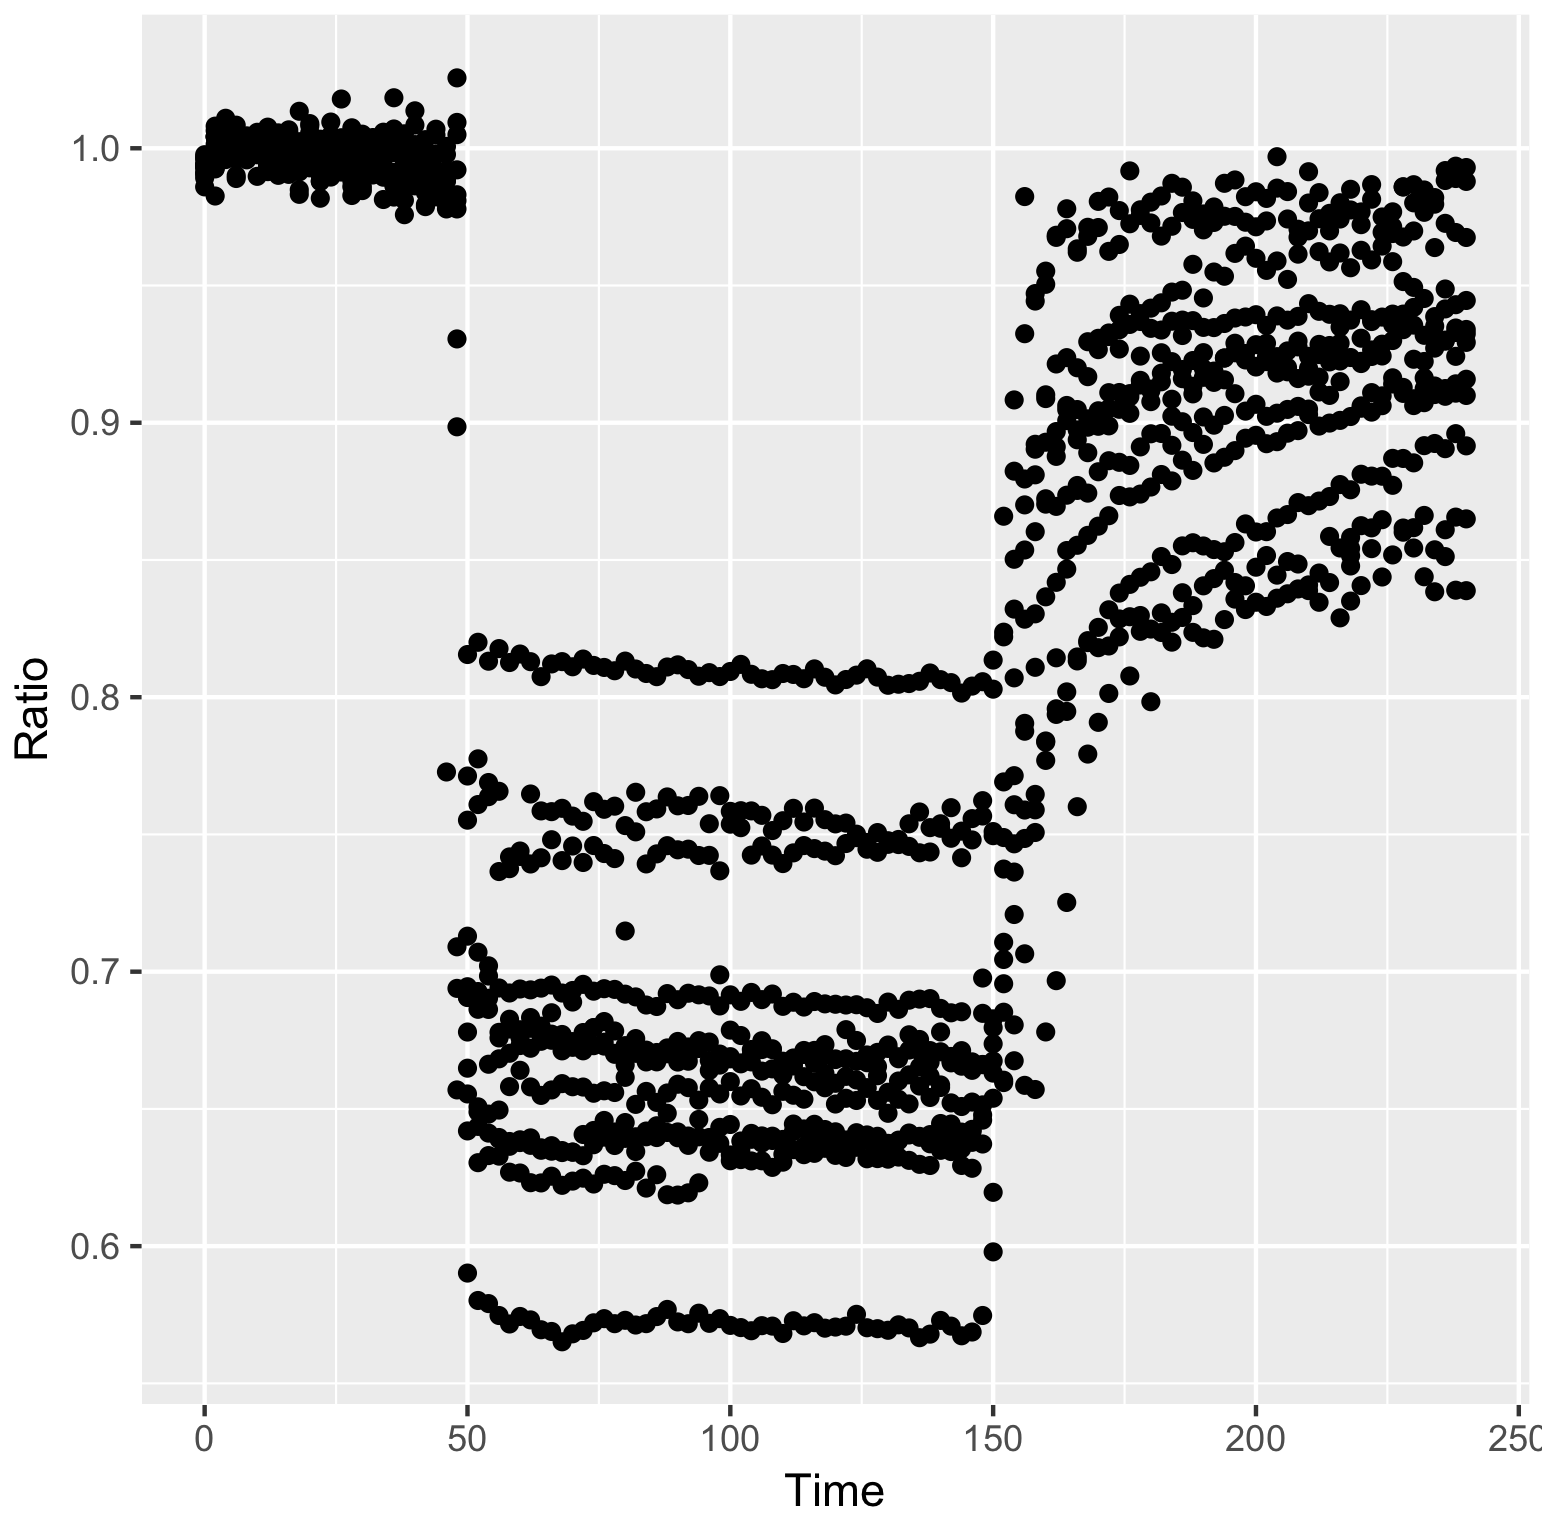 Visualizing data with R/ggplot2 - It's about time - the Node